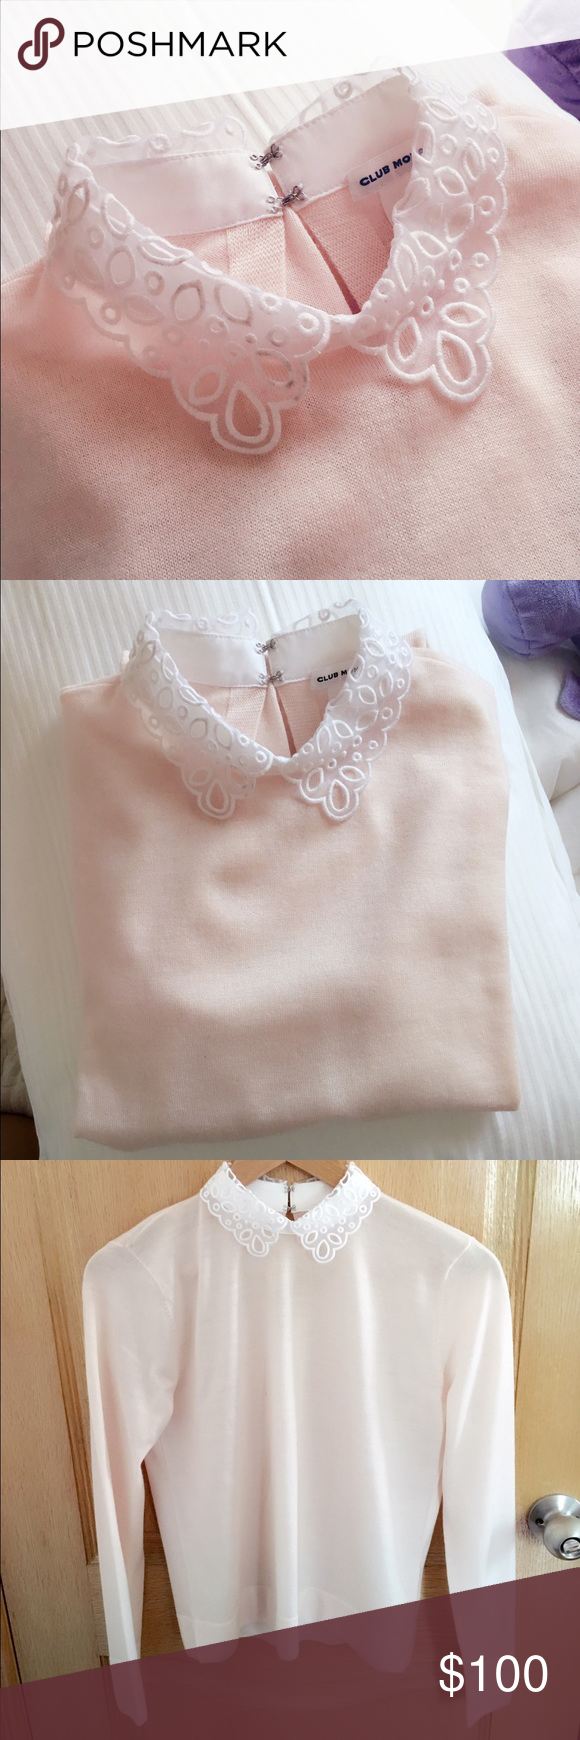 Club Monaco - Peter Pan Collar - Pink - Never Worn This is a never worn 100% Merino Wool sweater from Club Monaco. This sweater has a Peter Pan Lace Collar. It is a pale pink and in size S/P Club Monaco Sweaters Crew & Scoop Necks